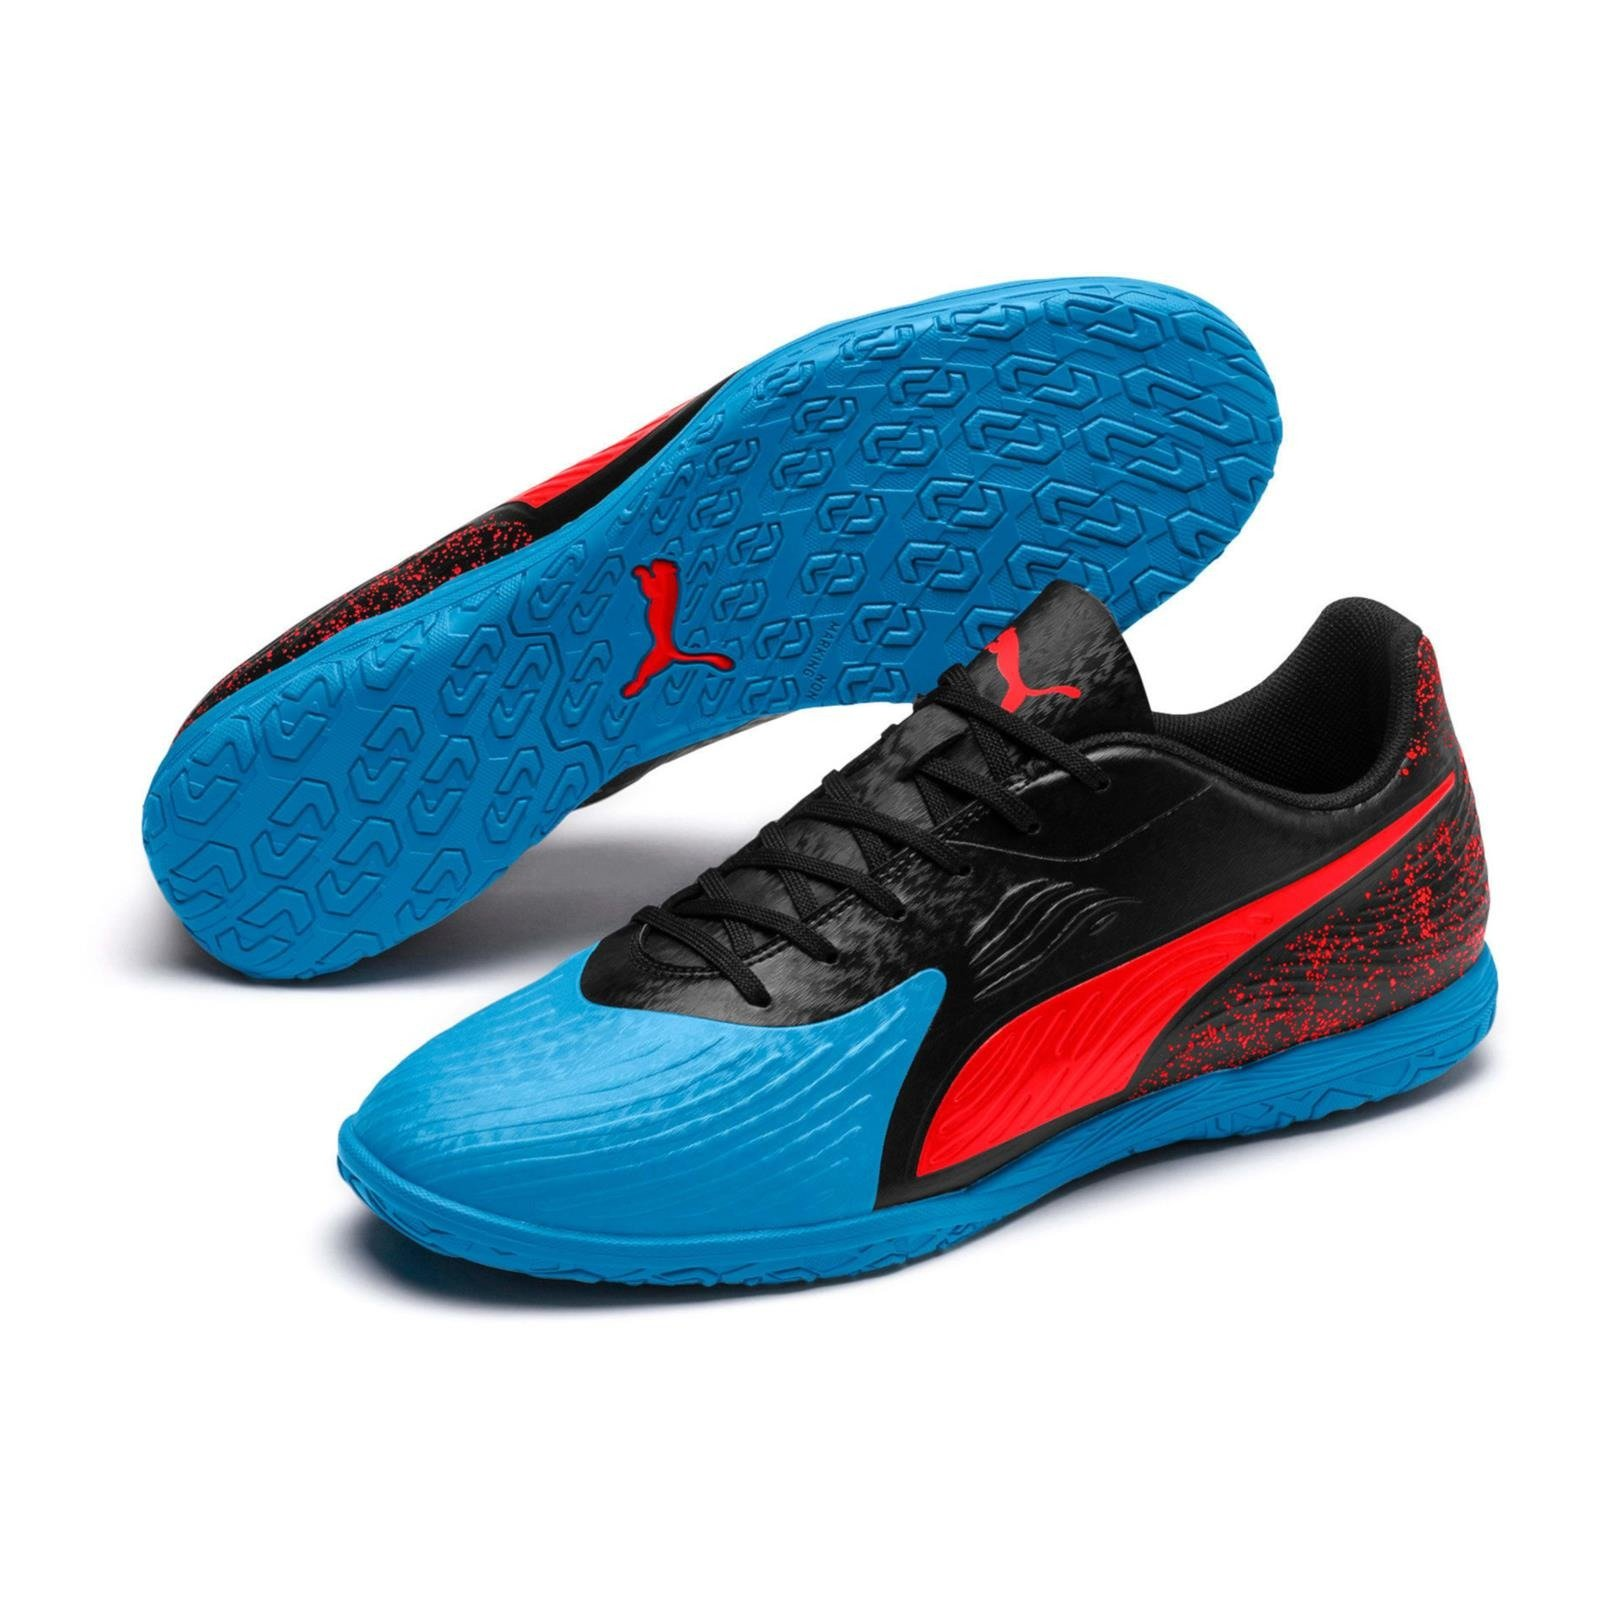 BUTY PUMA ONE 19.4 IT 10549601